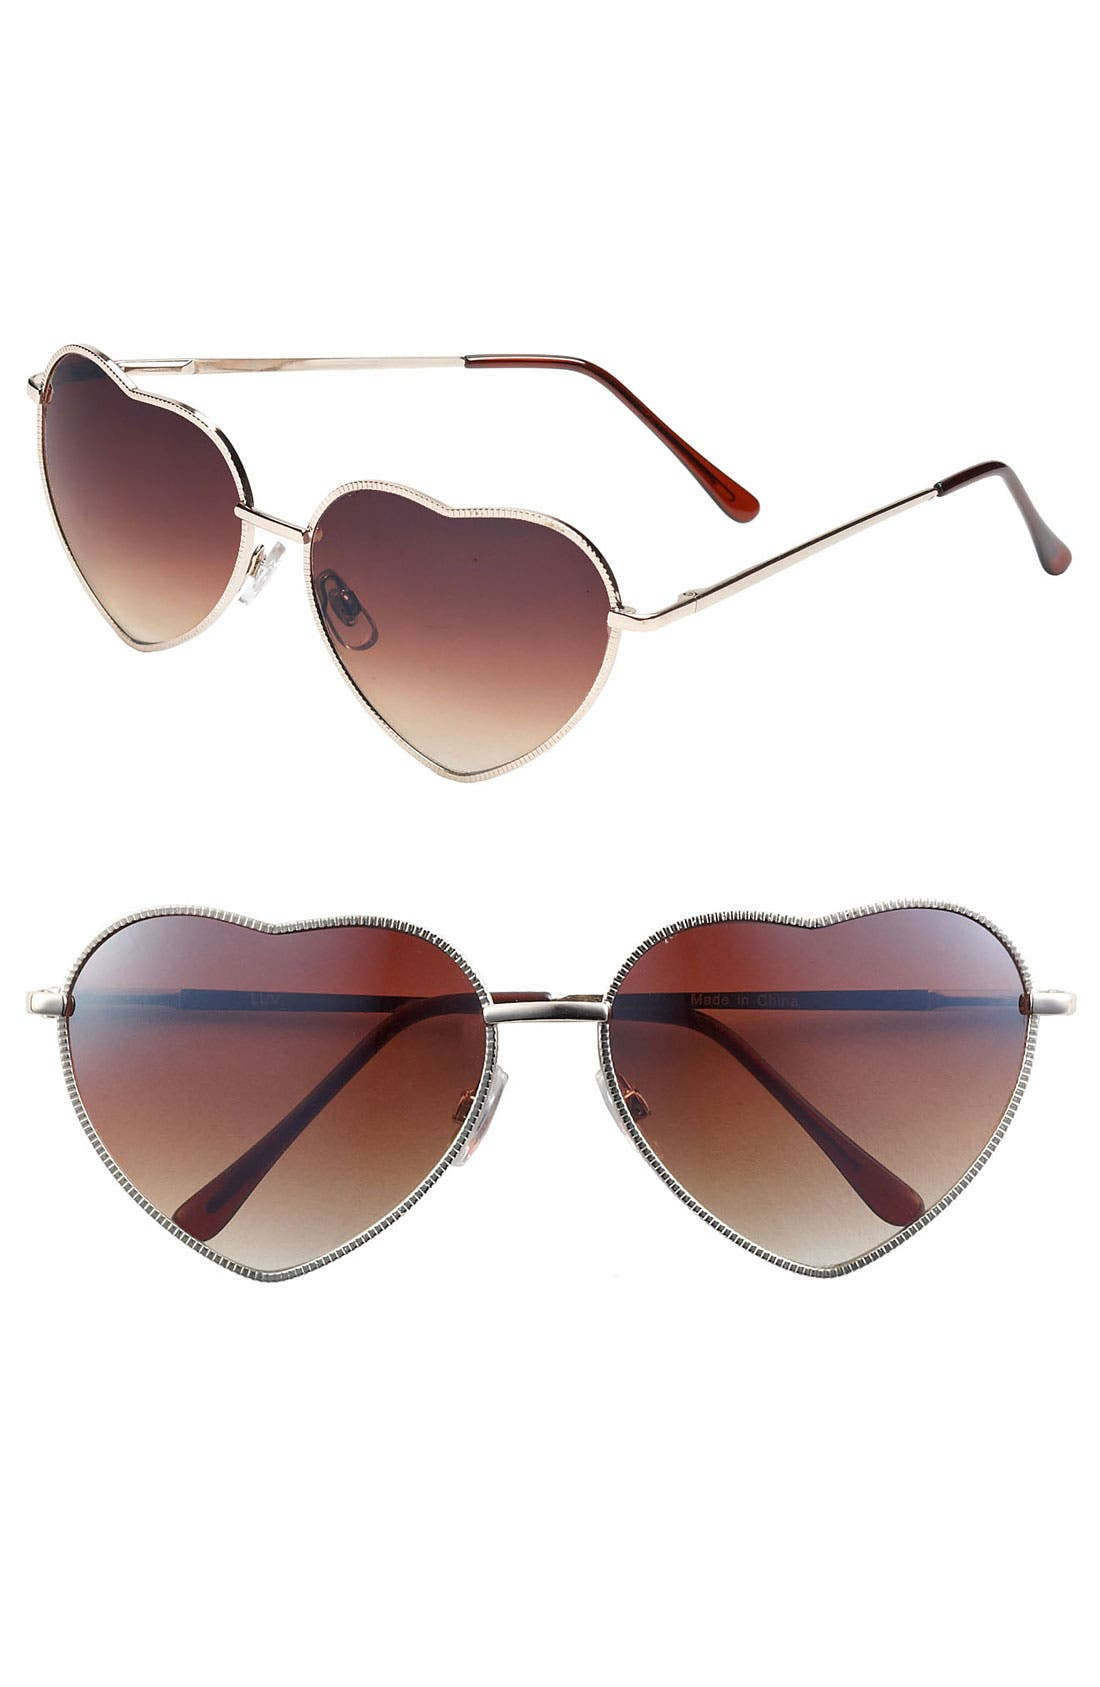 Main Image - BP. Heart Shaped 58mm Sunglasses